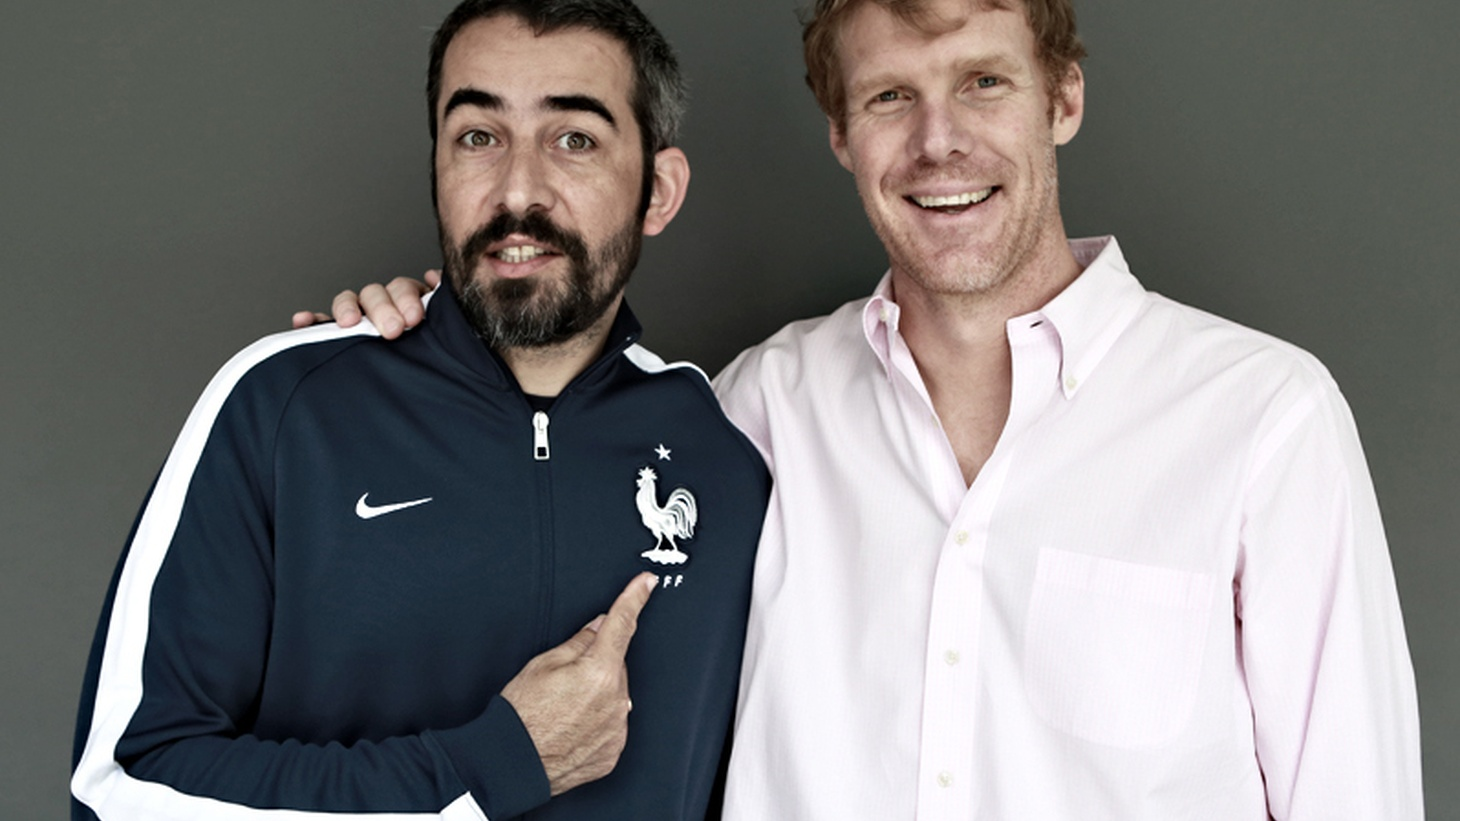 Before he left for Brazil to cover the World Cup, former soccer star Alexi Lalas stopped by KCRW to share some songs that have inspired him.